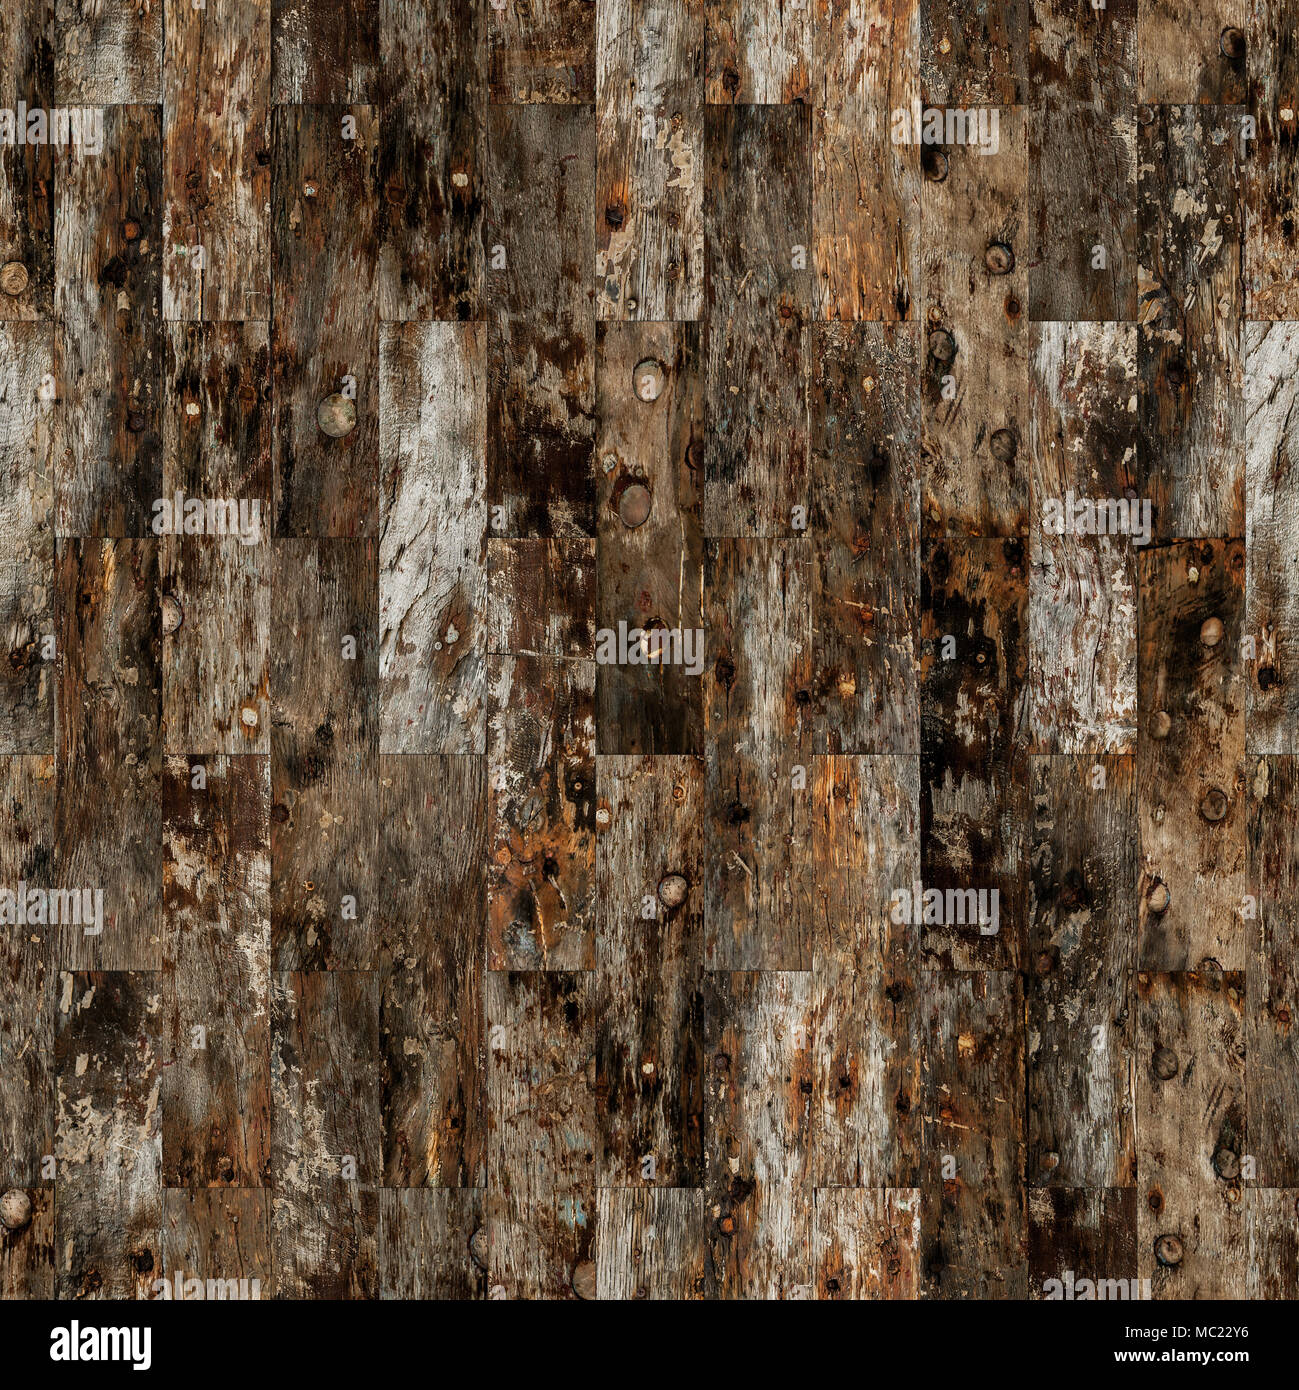 Background Of Rustic Parquet Wood Grain Texture With Knots Which Can